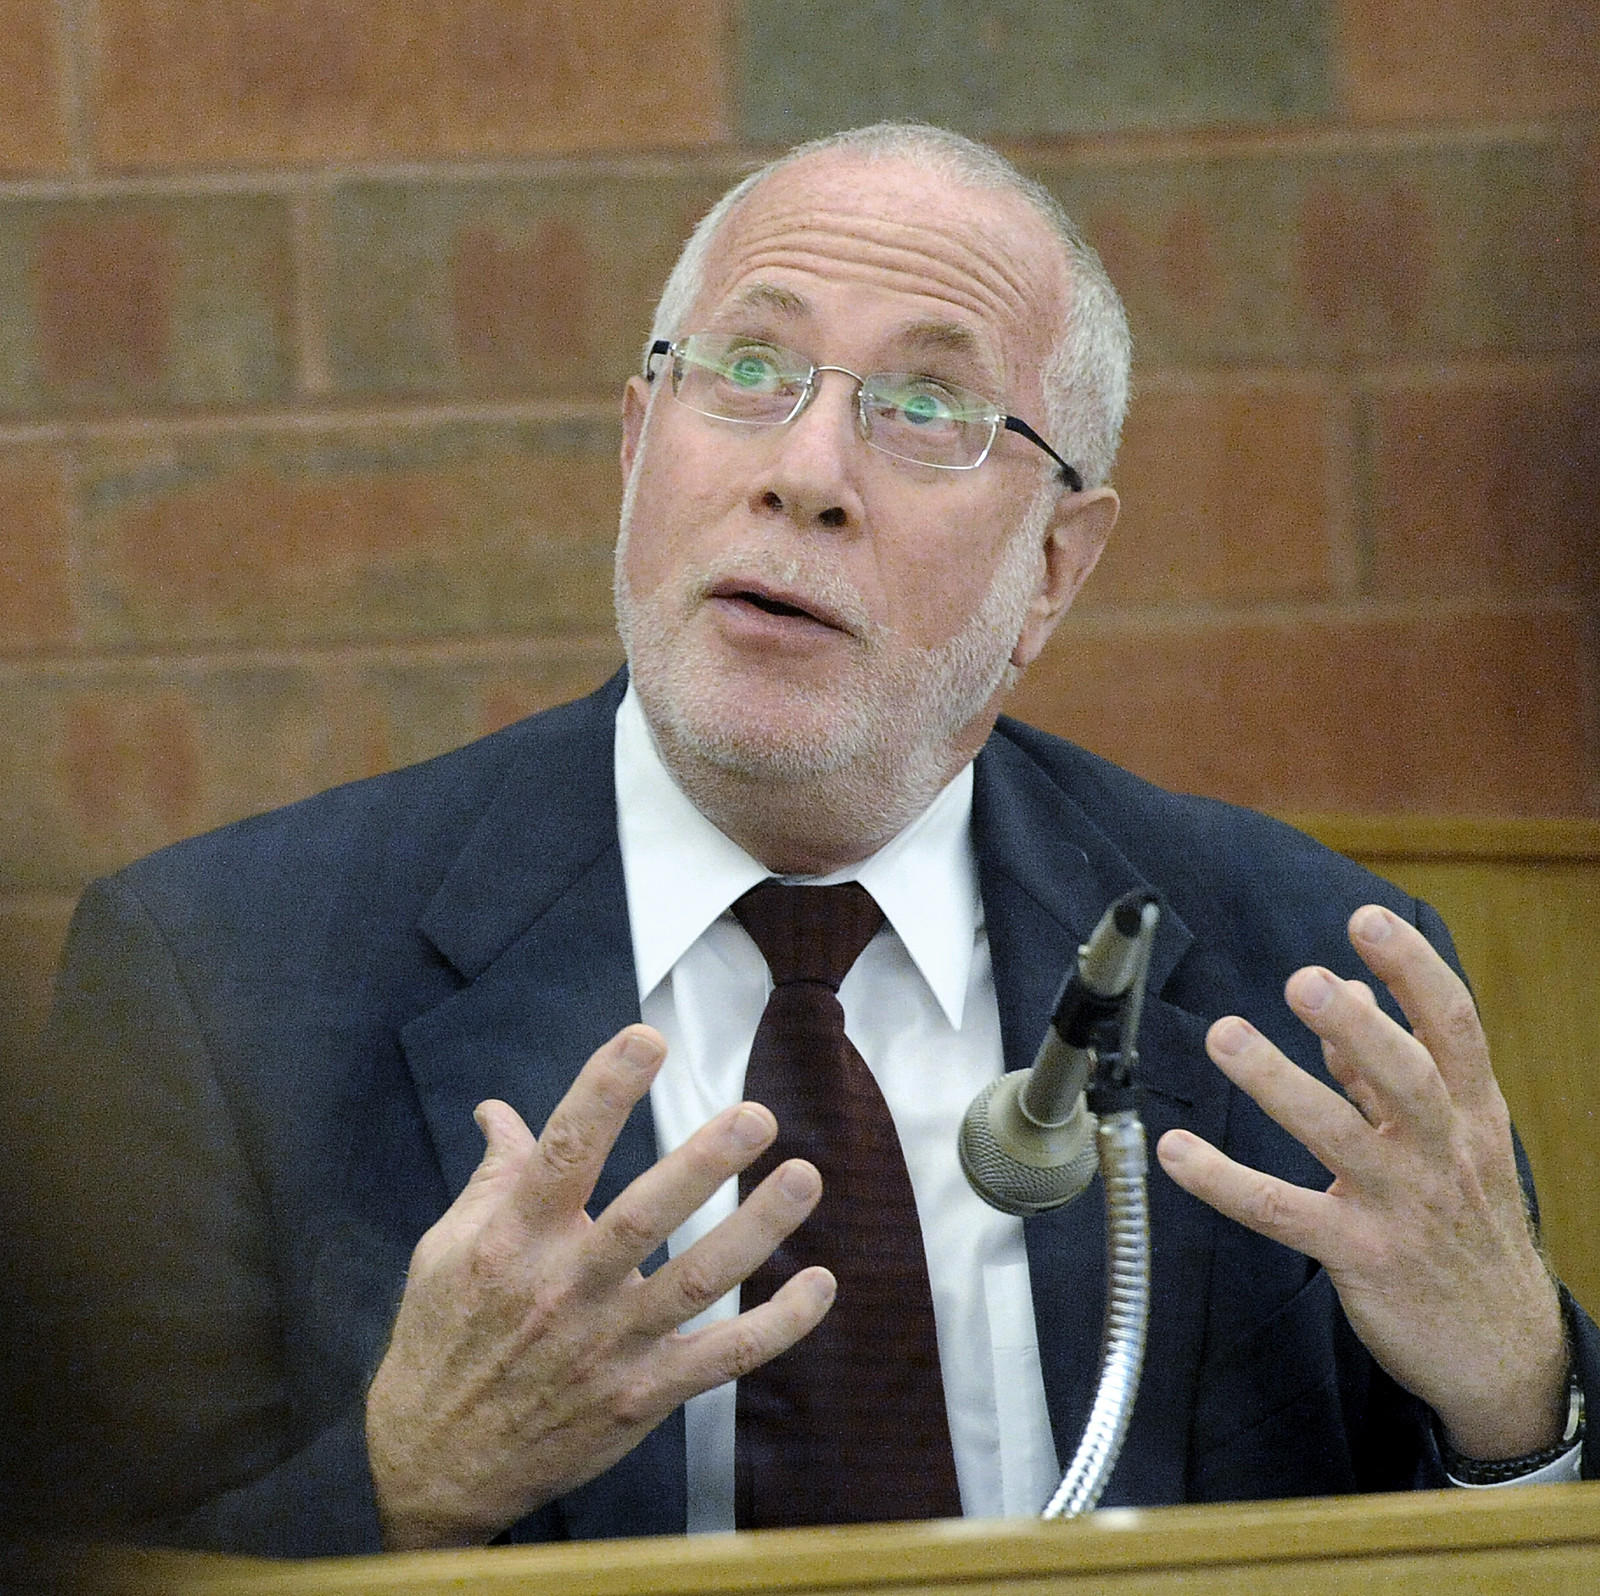 Dr. Harold I Schwartz, who is psychiatrist-in-chief at The Institute of Living and vice president of Behavioral Health at Hartford Hospital, is a member of Gov. Dannel P. Malloy's Sandy Hook Advisory Commission.